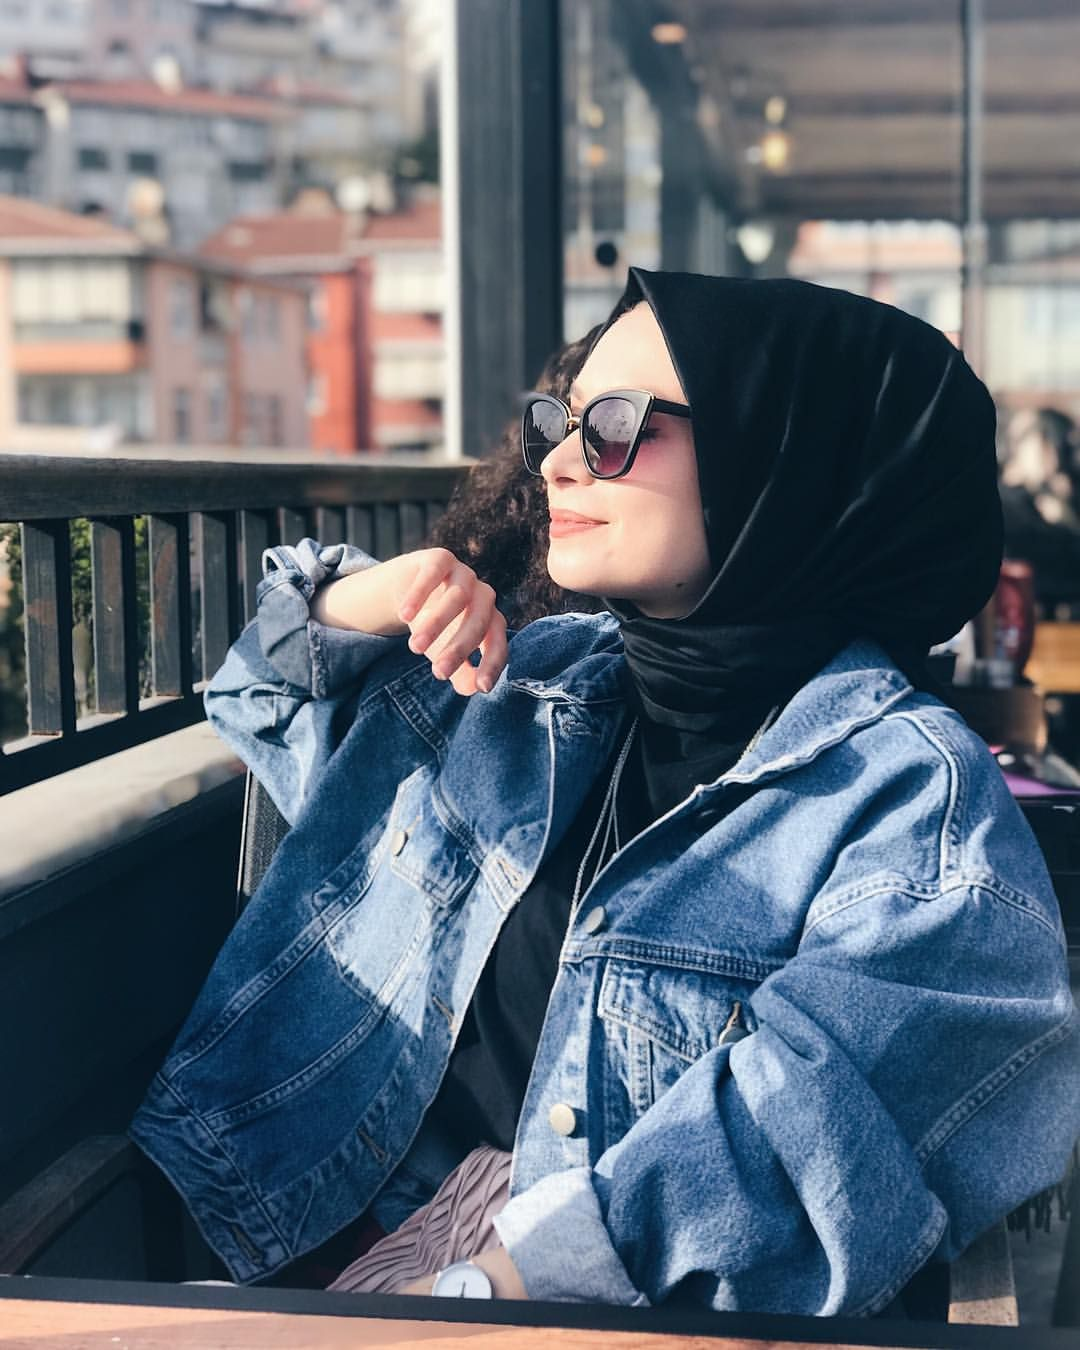 Simon Gipps Kent Top 10 Photo De Profil Instagram Fille Hijab